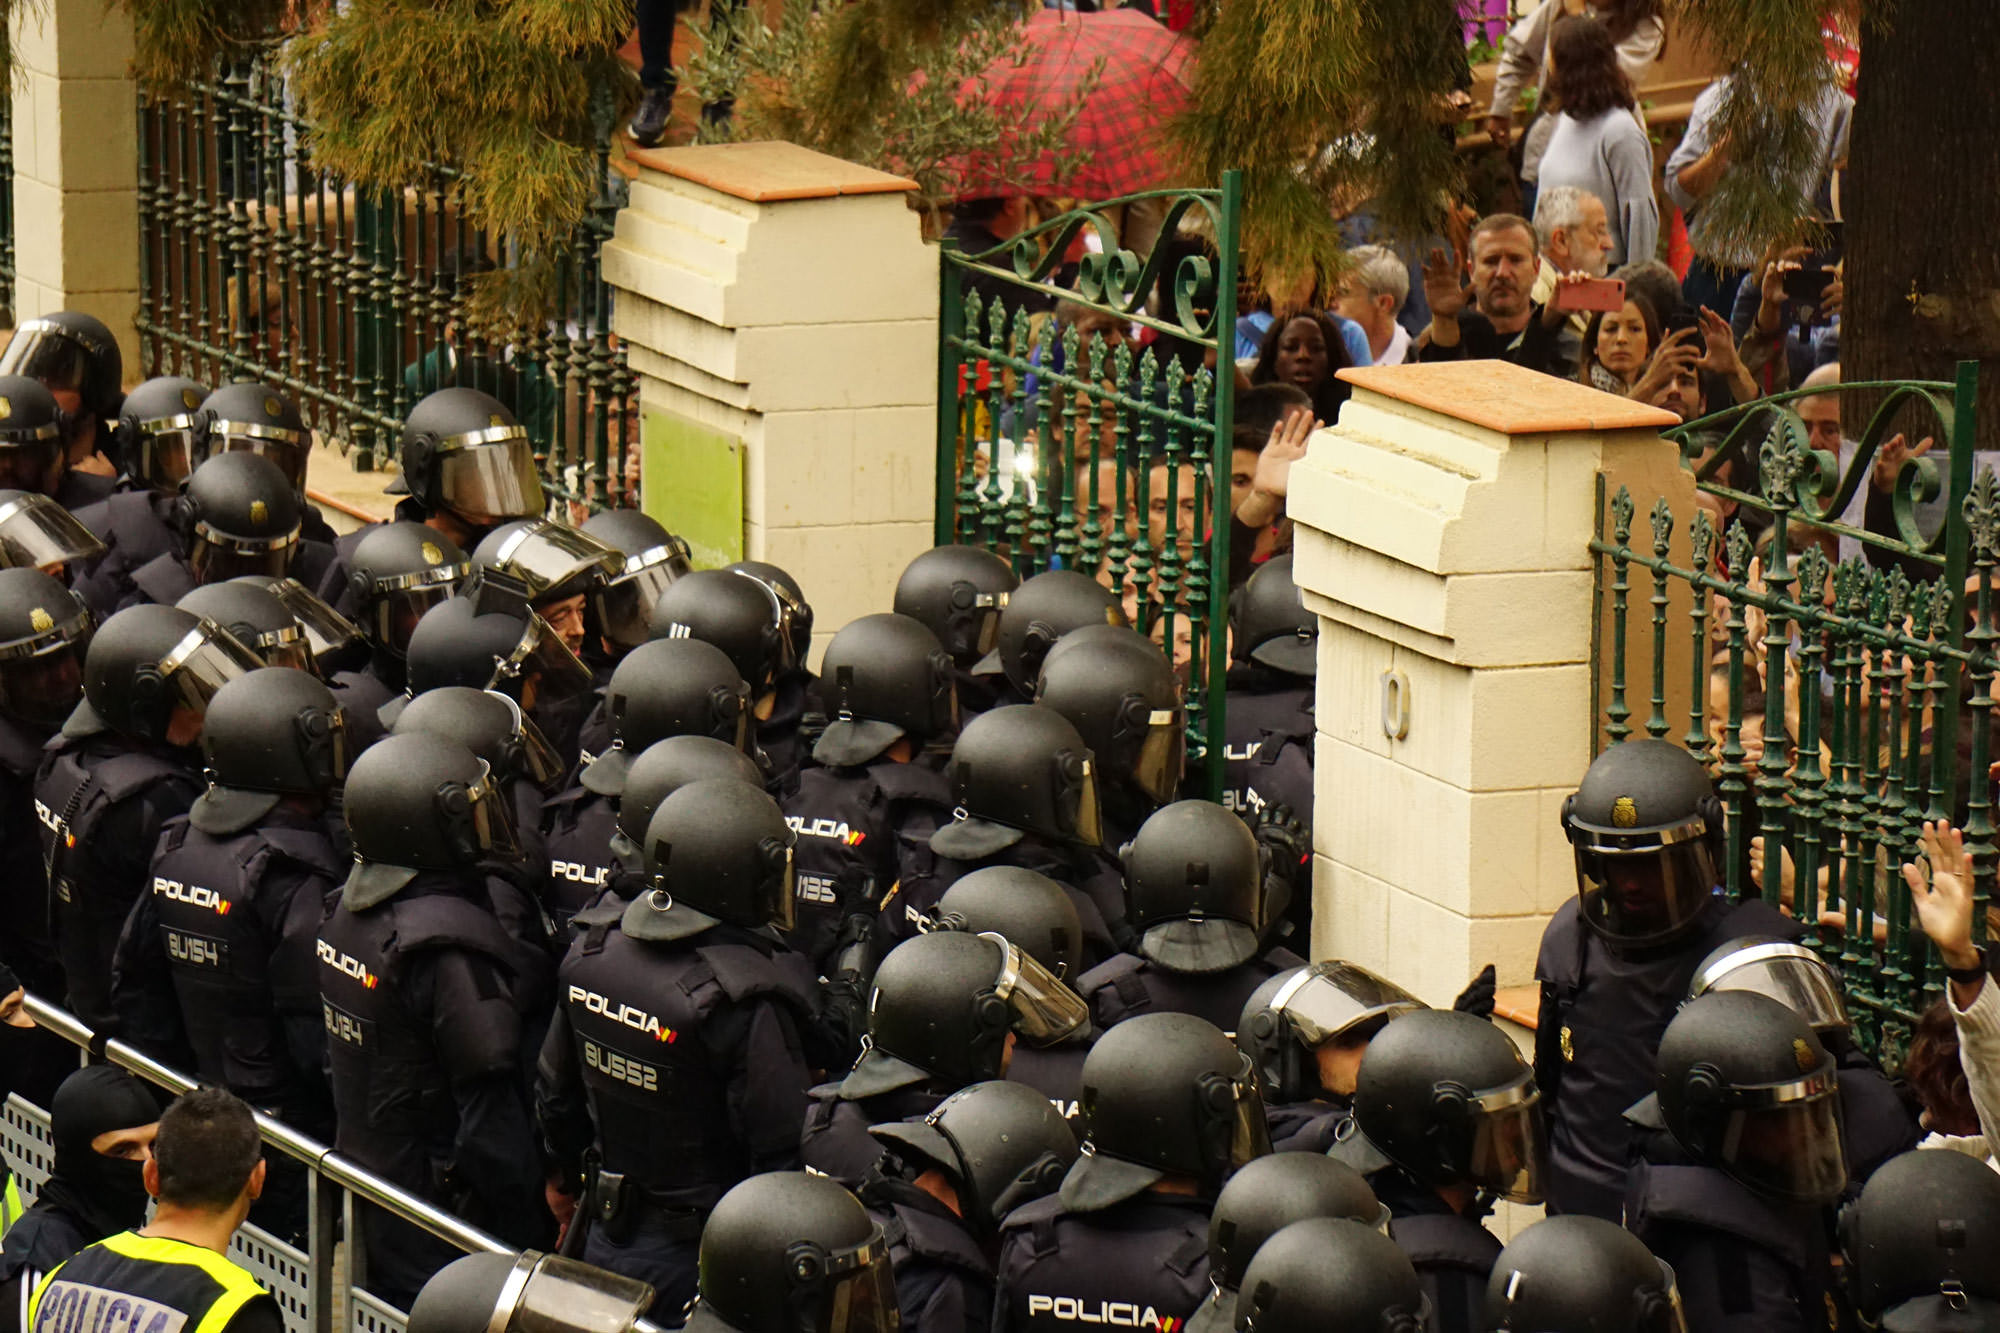 Spanish riot police in Catalunya.